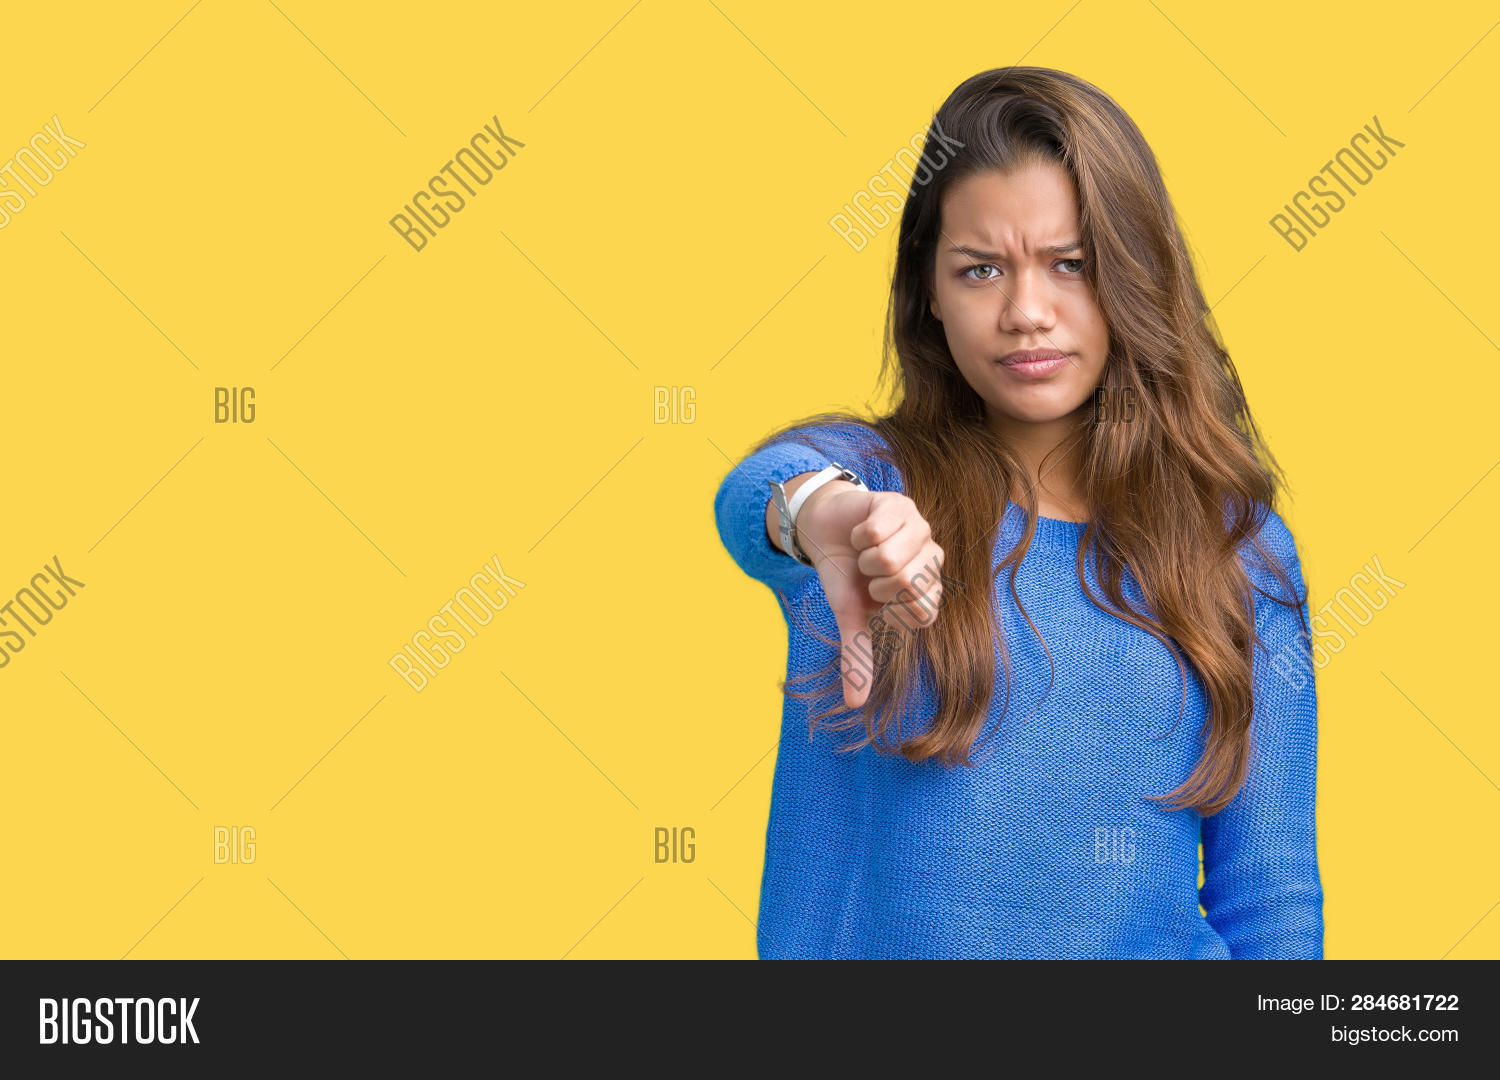 Young beautiful brunette woman wearing blue sweater over isolated background looking unhappy and ang